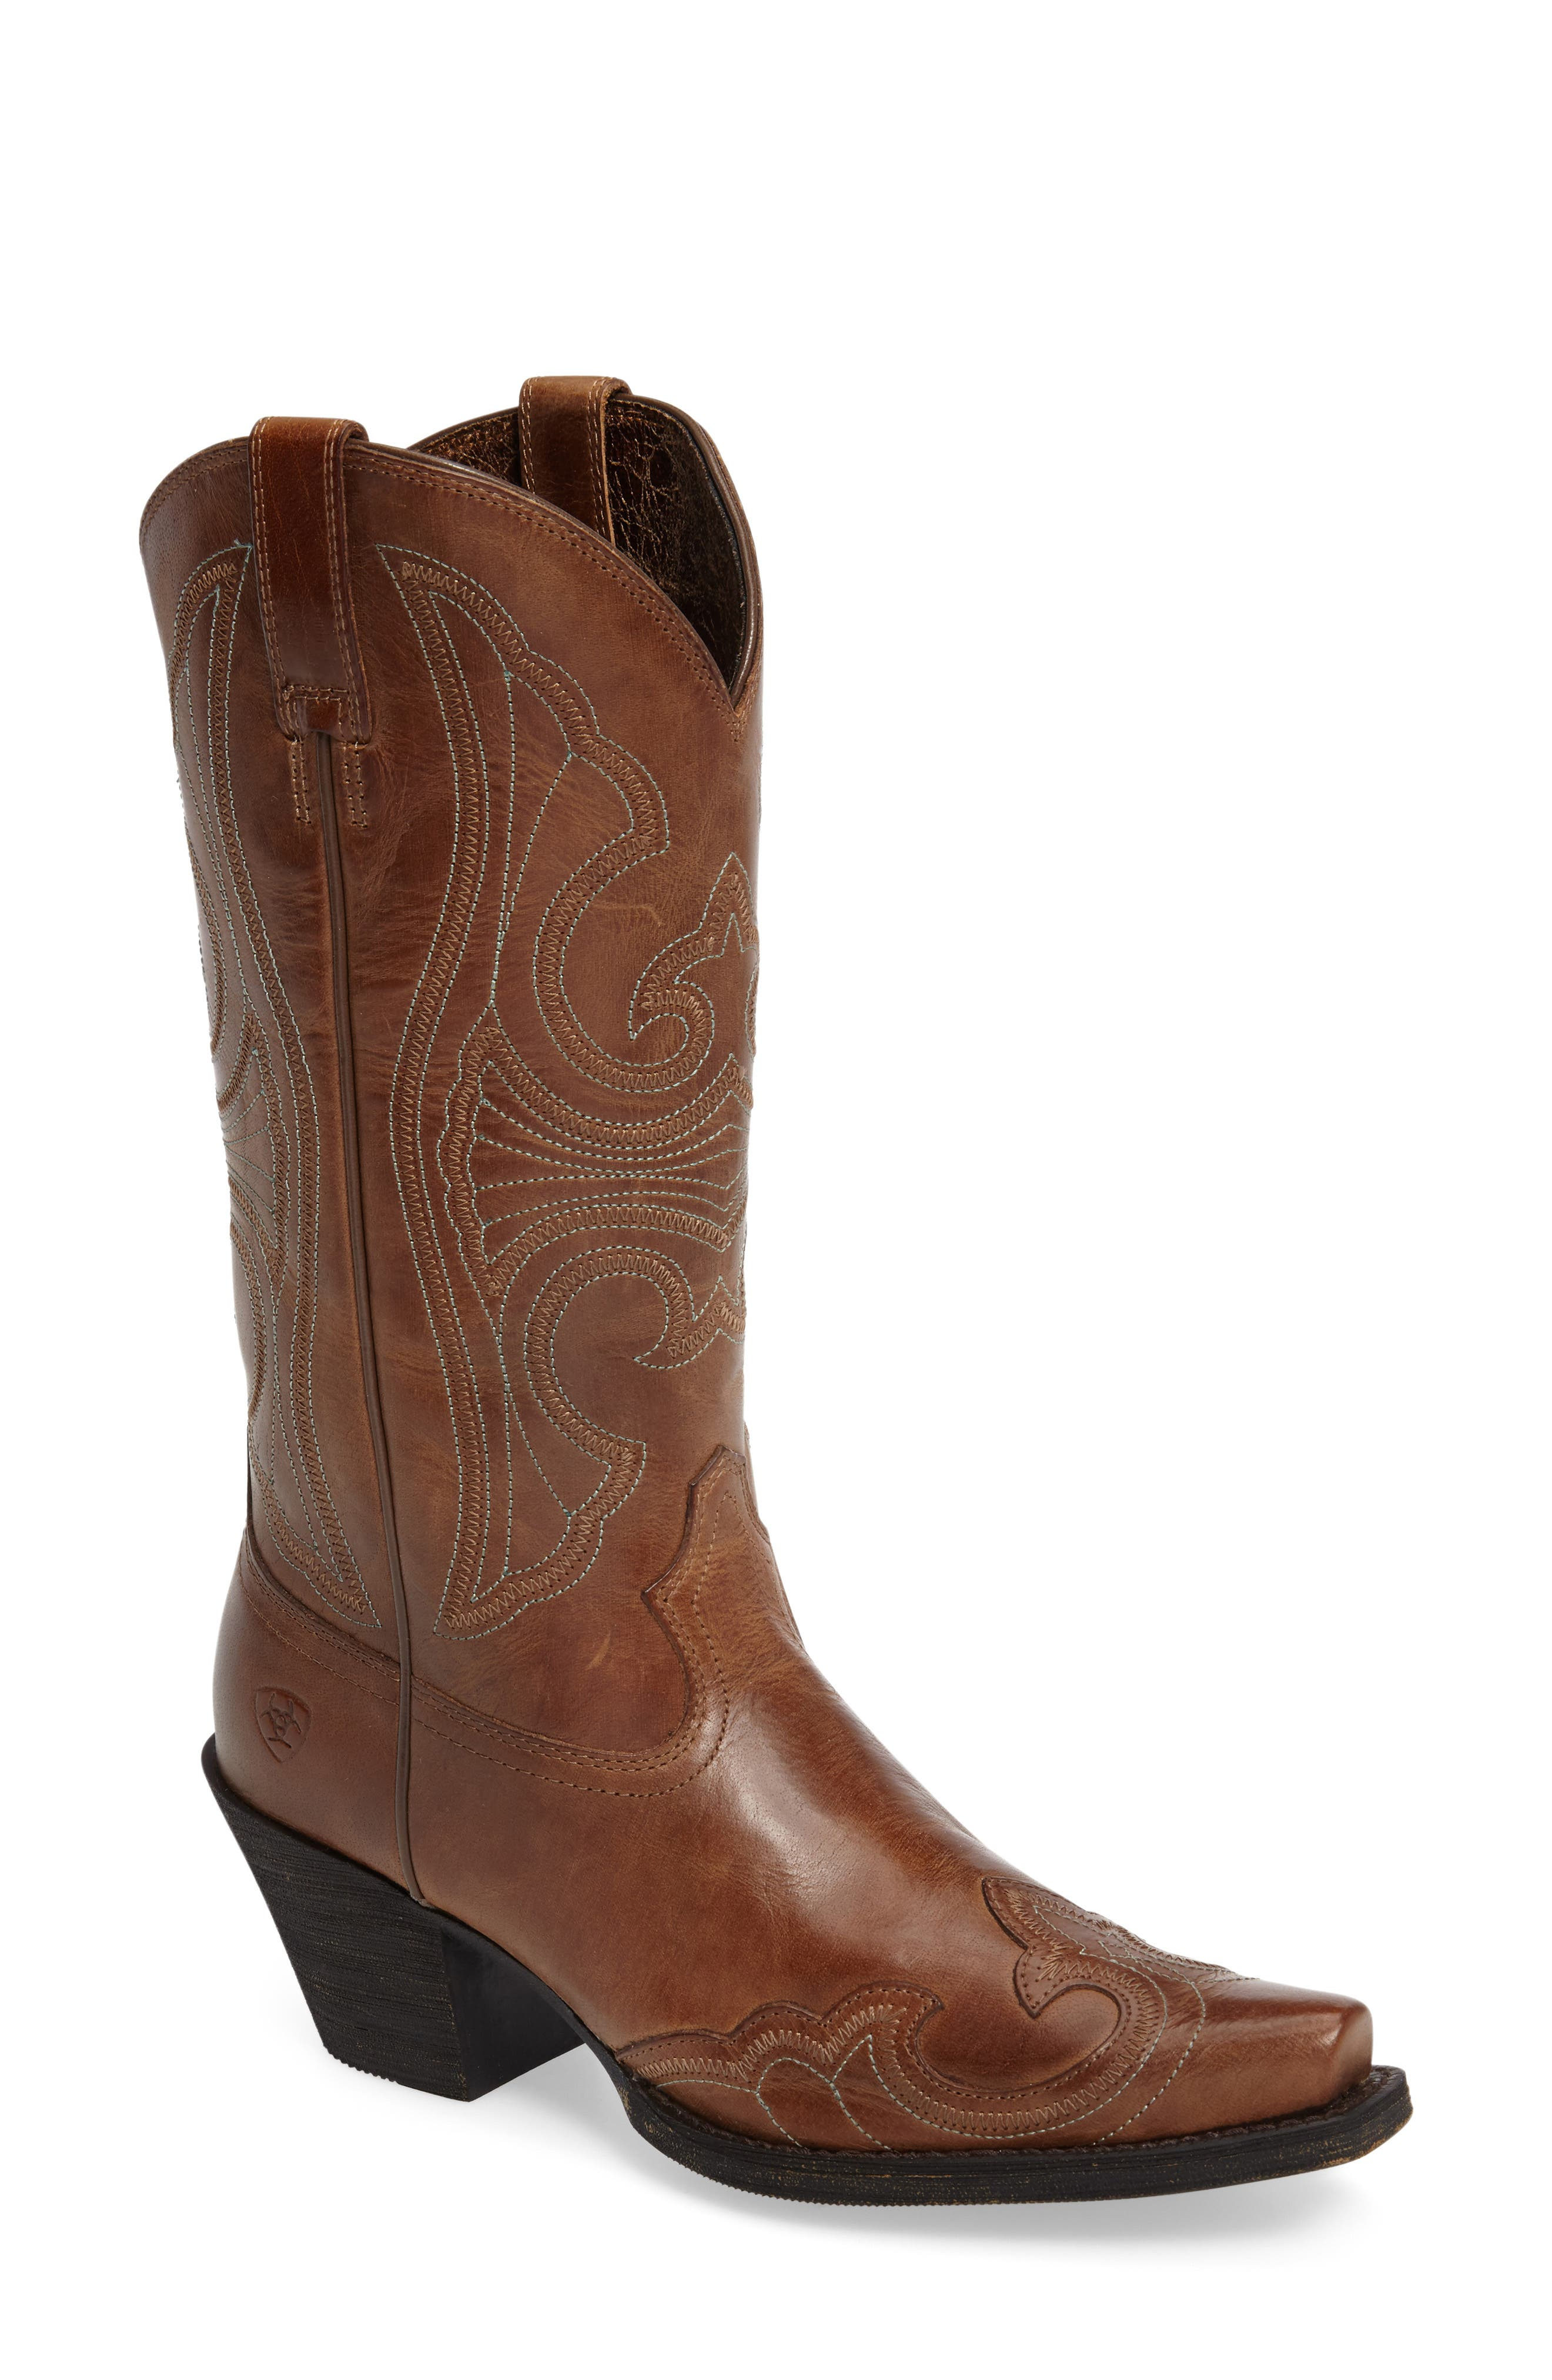 Main Image - Ariat Round Up D-Toe Wingtip Western Boot (Women)